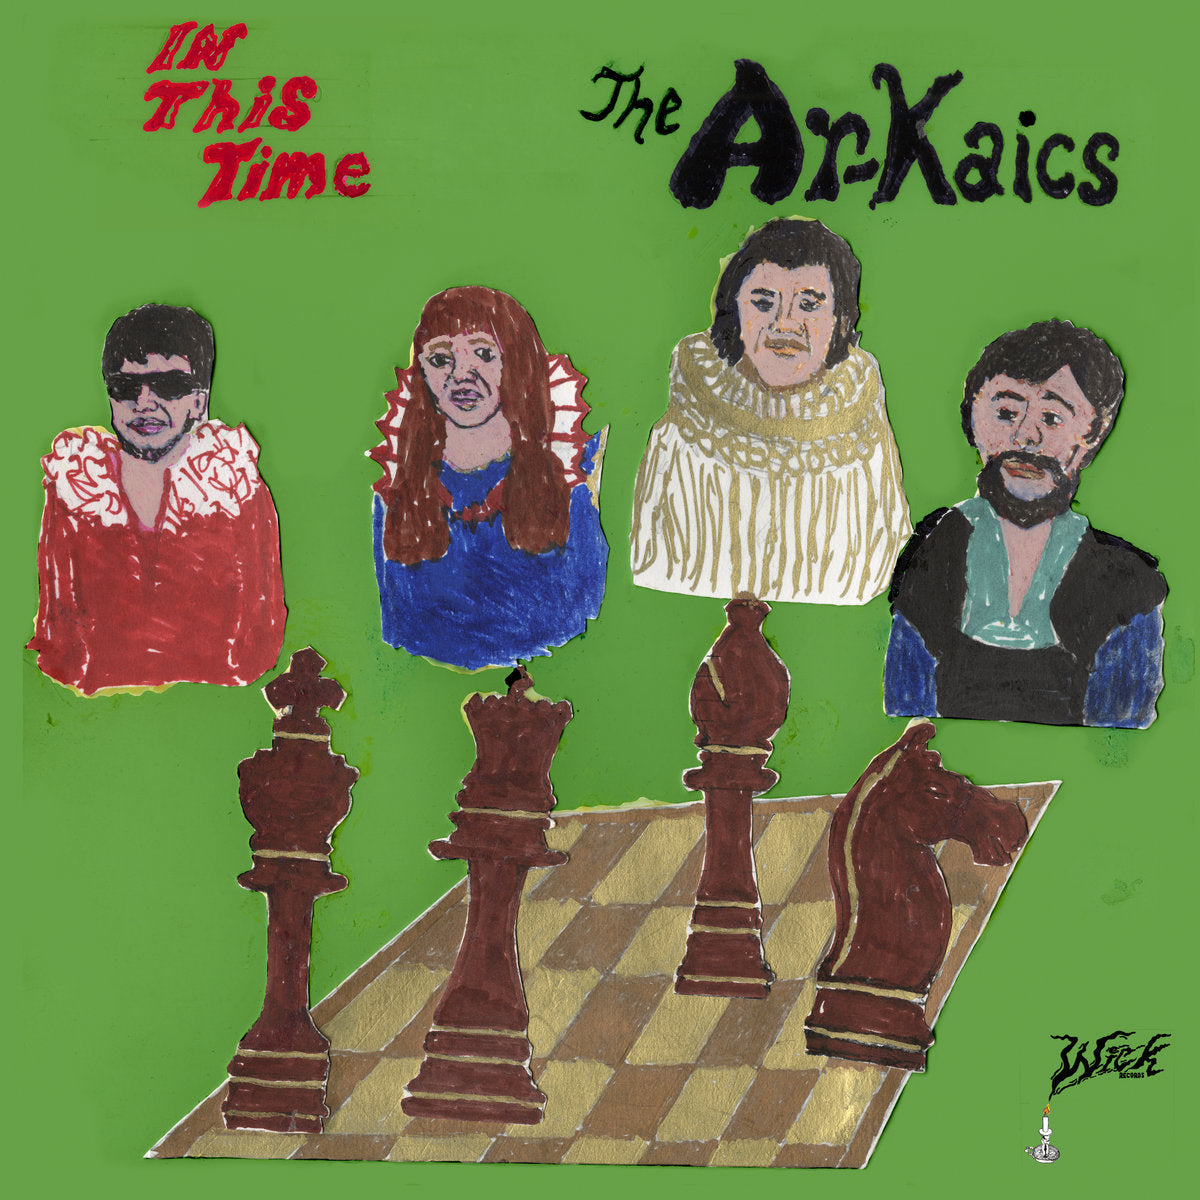 The Ar-Kaics - In This Time LP